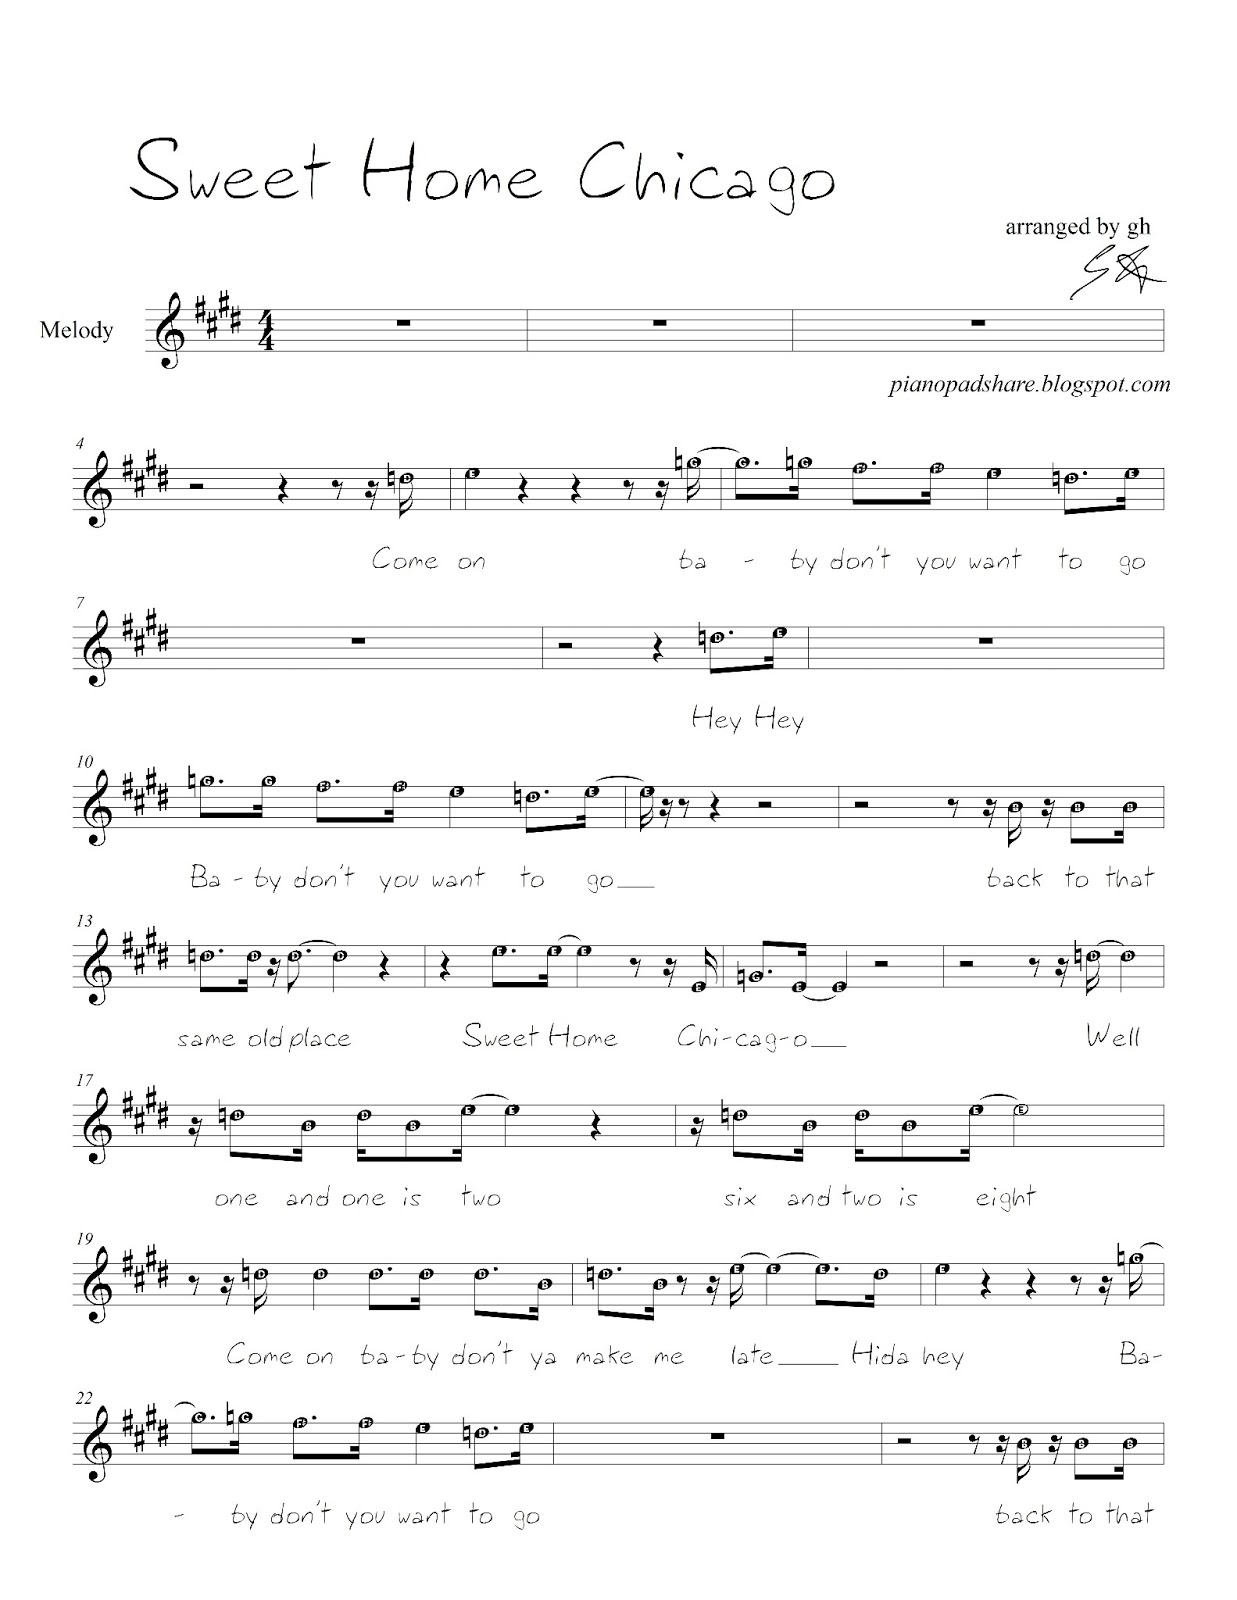 Pianopad upload community this song titled sweet home chicago this song titled sweet home chicago melody simple as per request was exported from pianopad by gh hexwebz Image collections